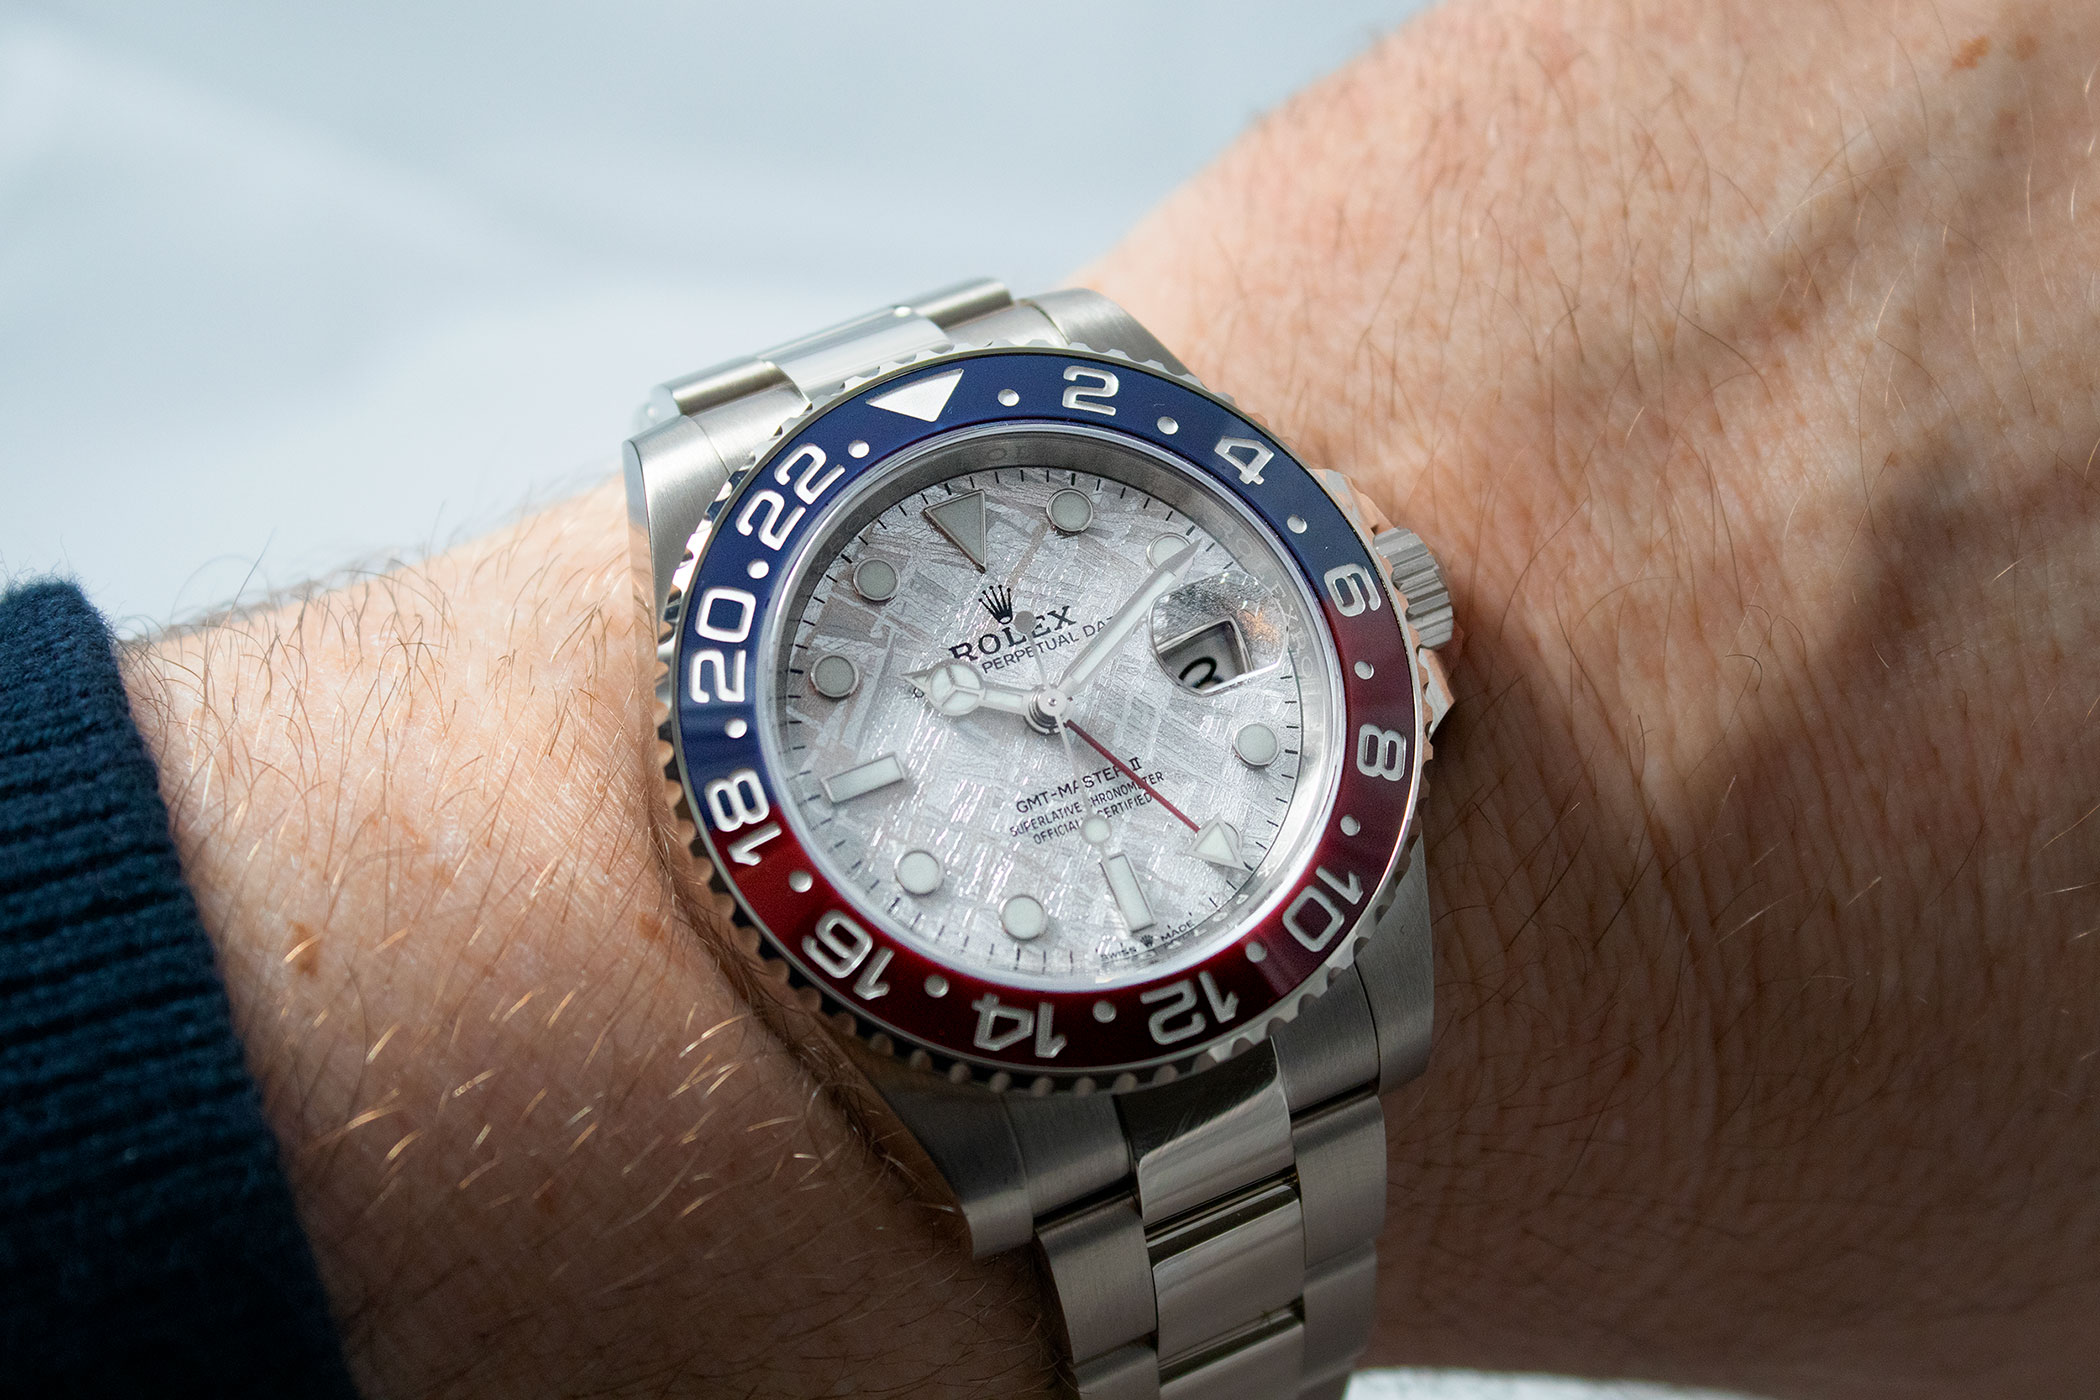 wp-content/uploads/2021/03/rolex-gmt-master-ii-126719blro-white-gold-pepsi-meteorite-review-2-300x200.jpg